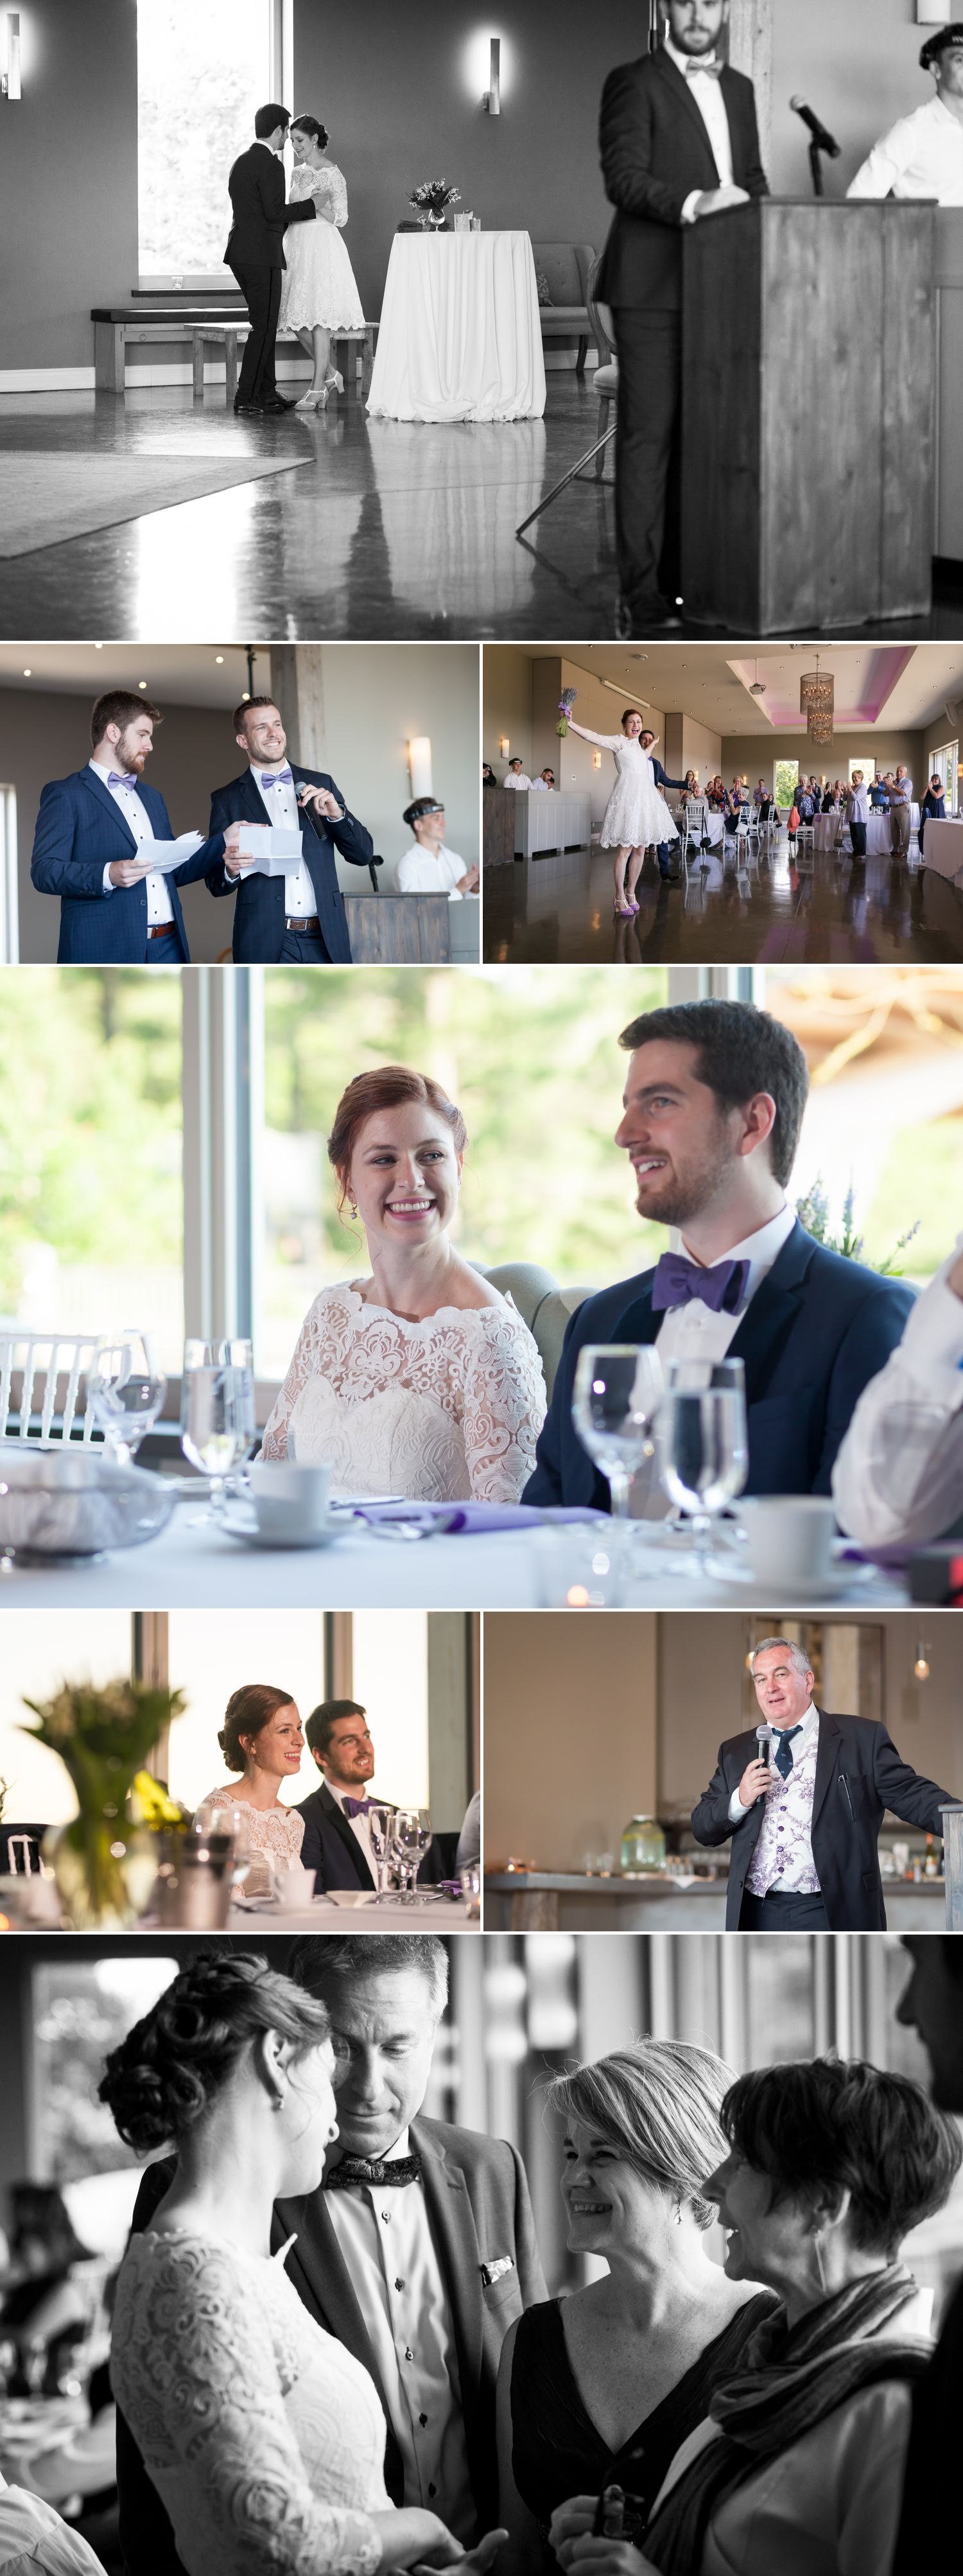 The bride and groom enjoying speeches by friends and family during their wedding reception at Le Belvedere